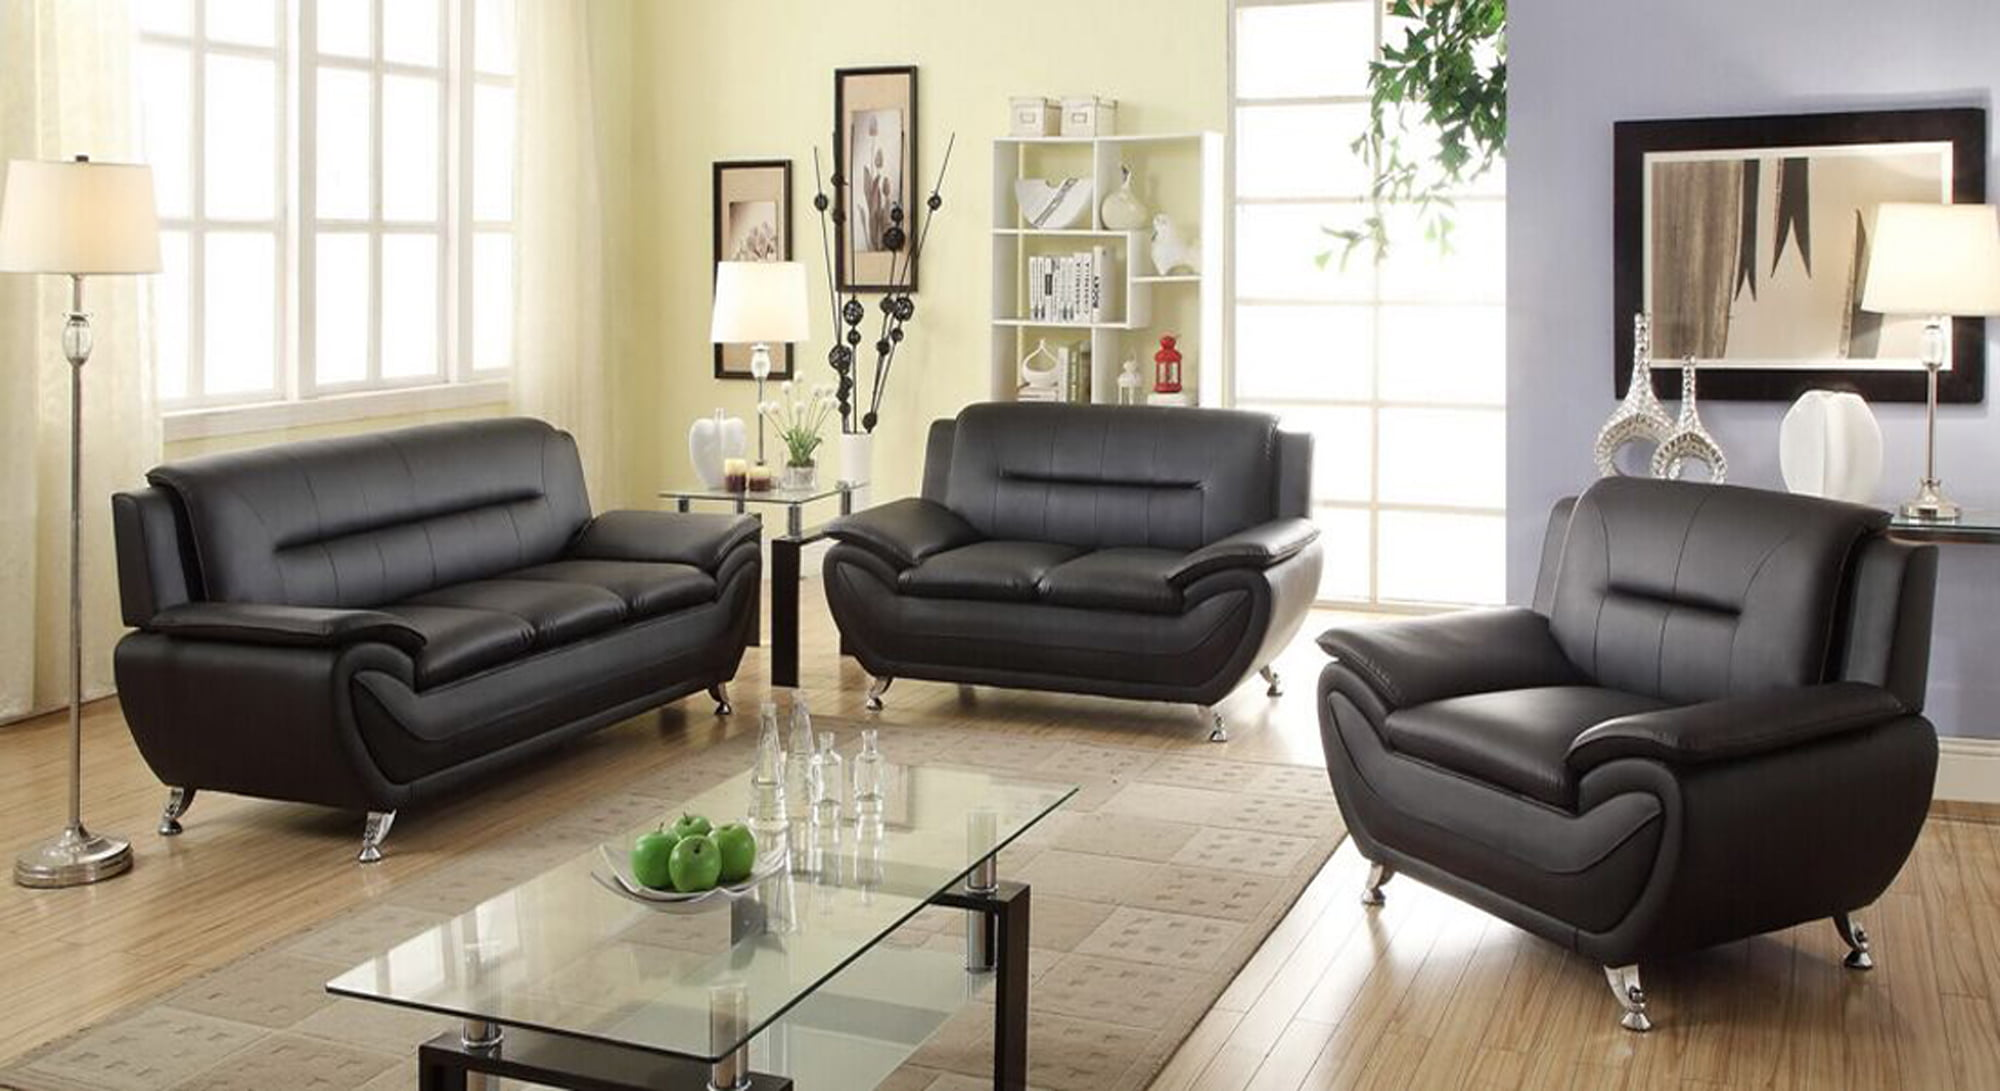 Inspirational Modern Leather sofa Sets - ourrtw.com | ourrtw.com